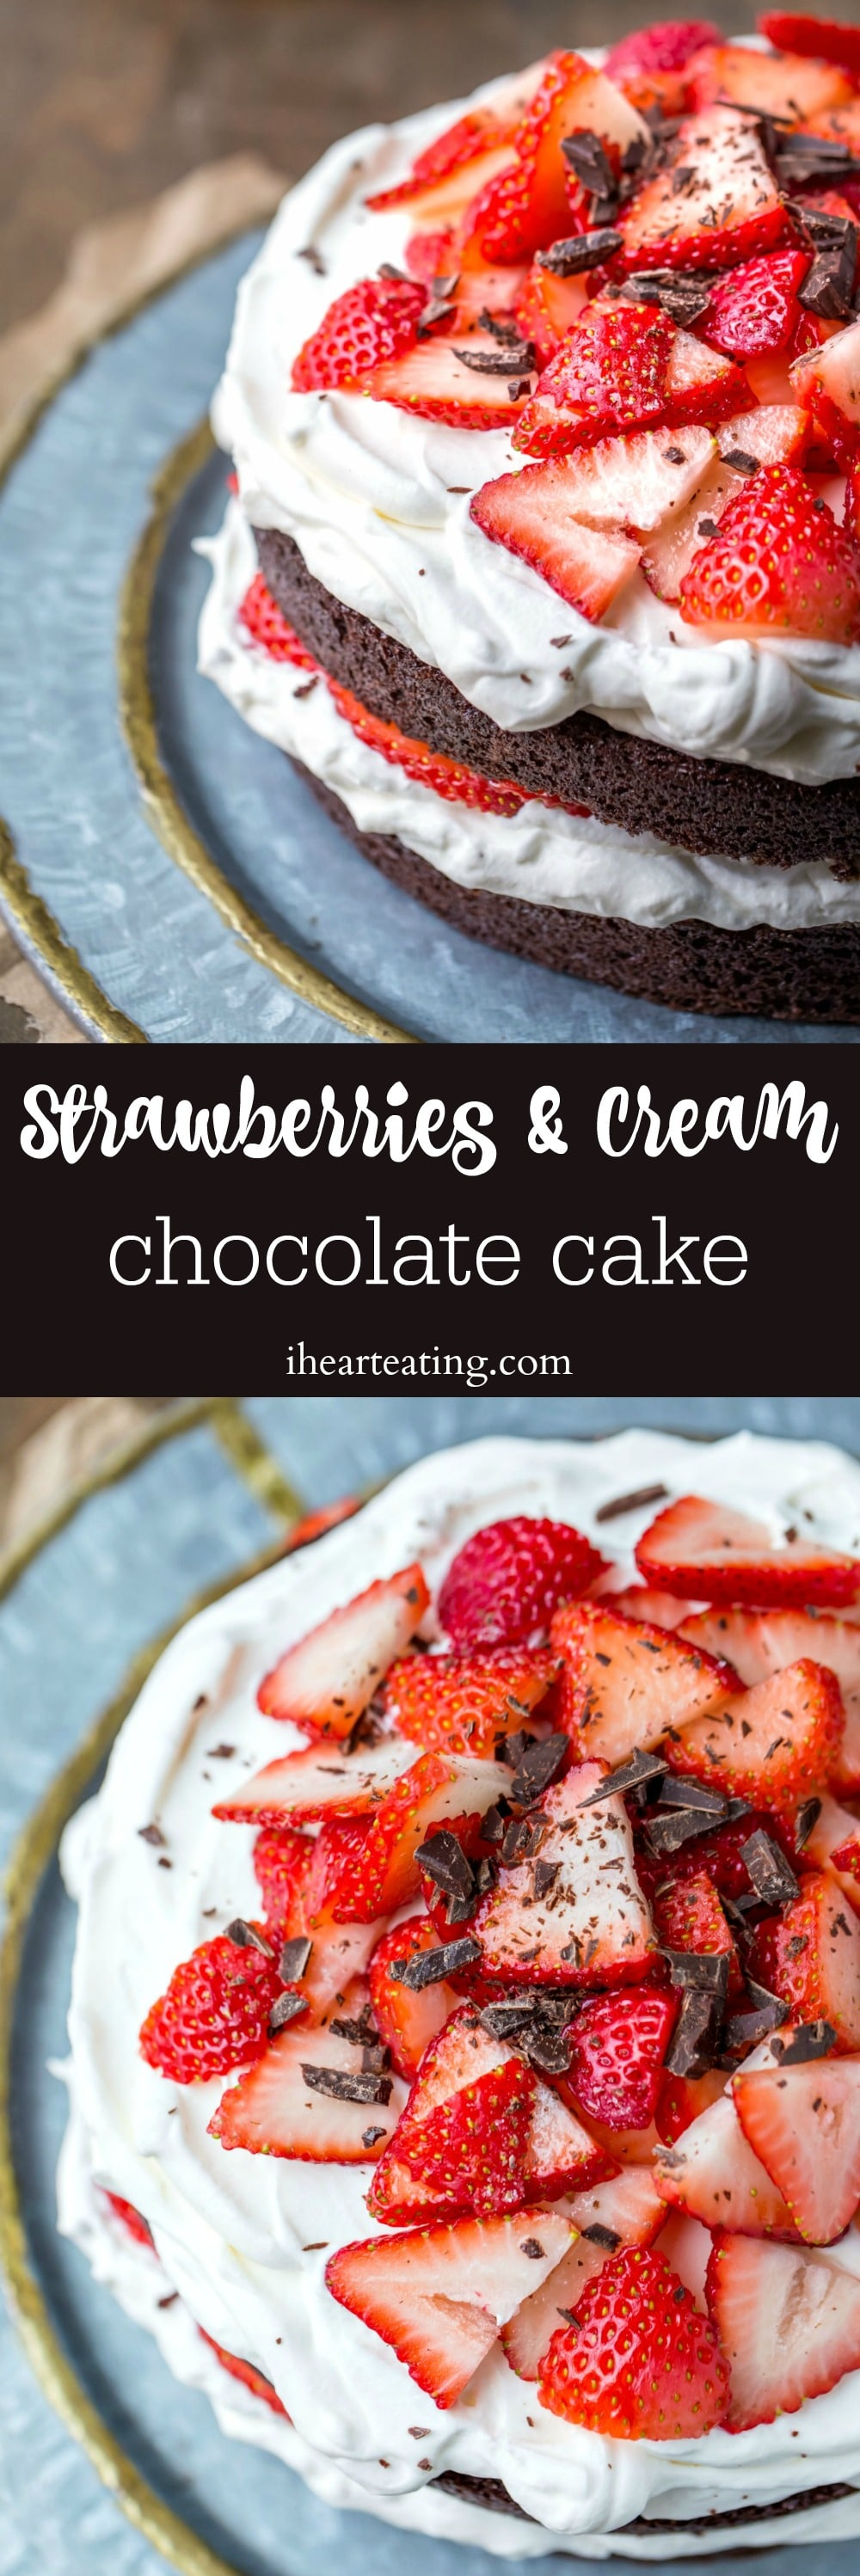 Strawberries & Cream Chocolate Cake is a rich chocolate cake topped with whipped cream and fresh strawberries.